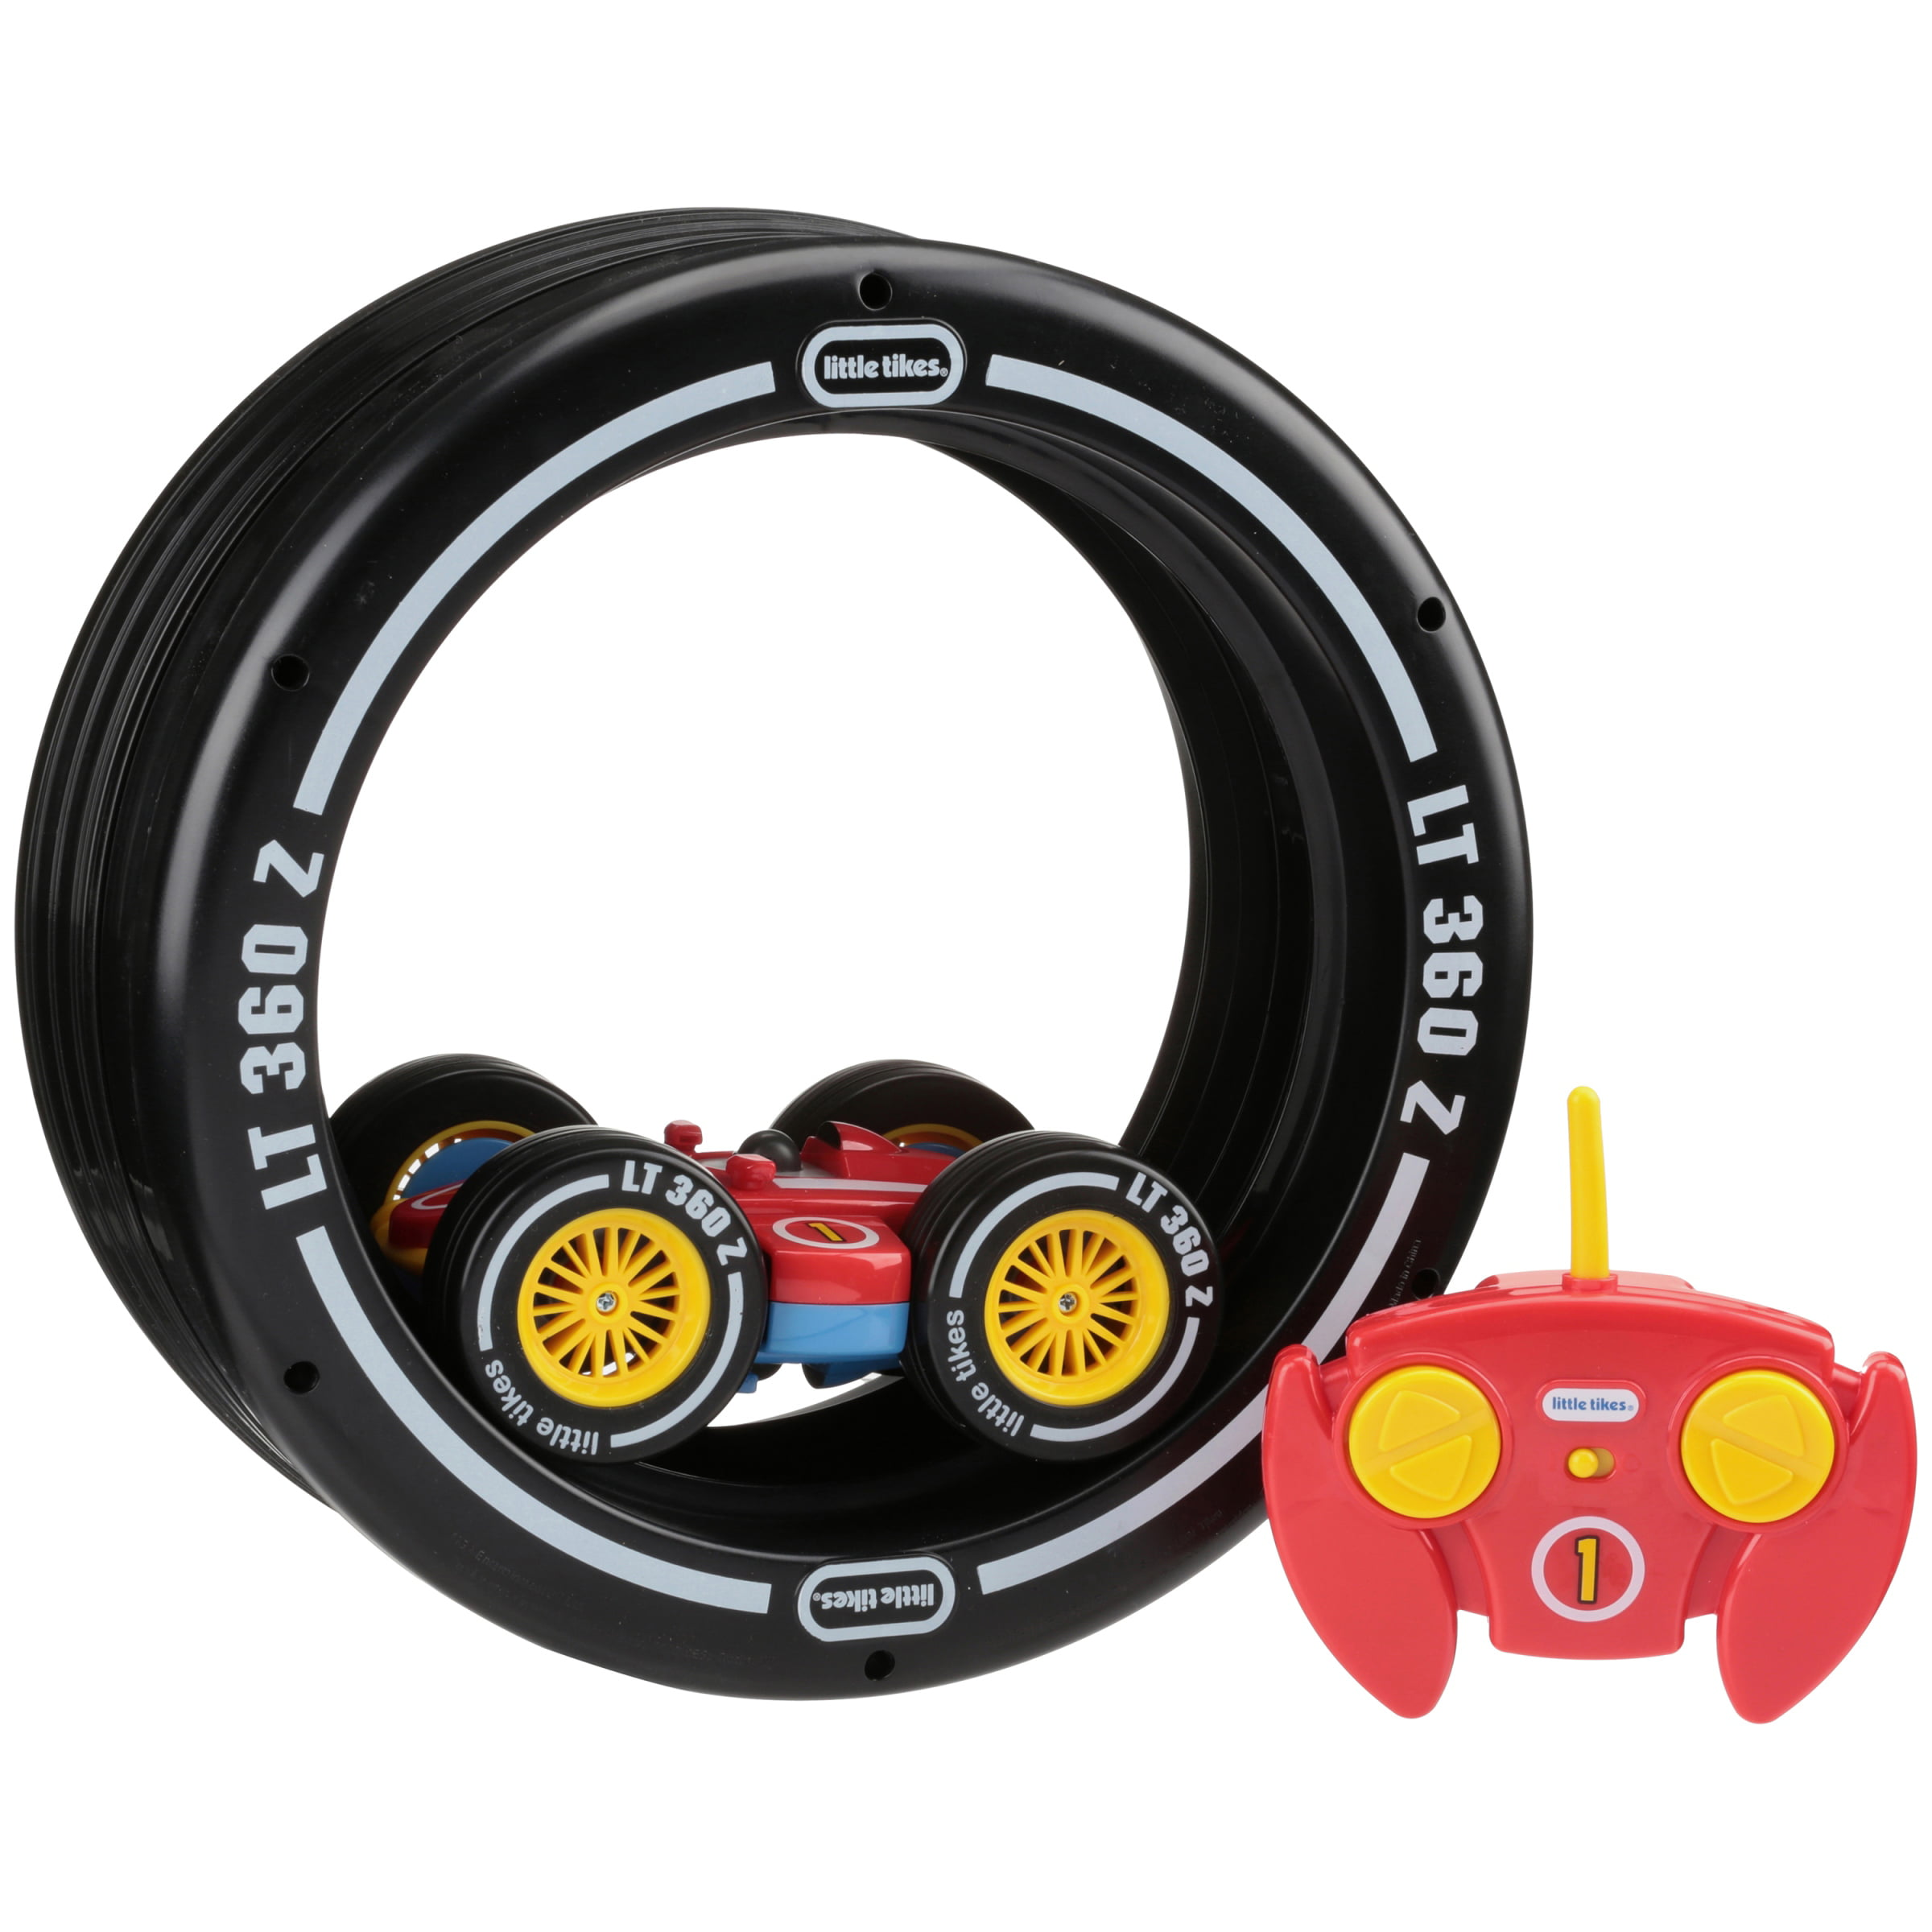 Little Tikes RC Tire Twister by Little Tikes